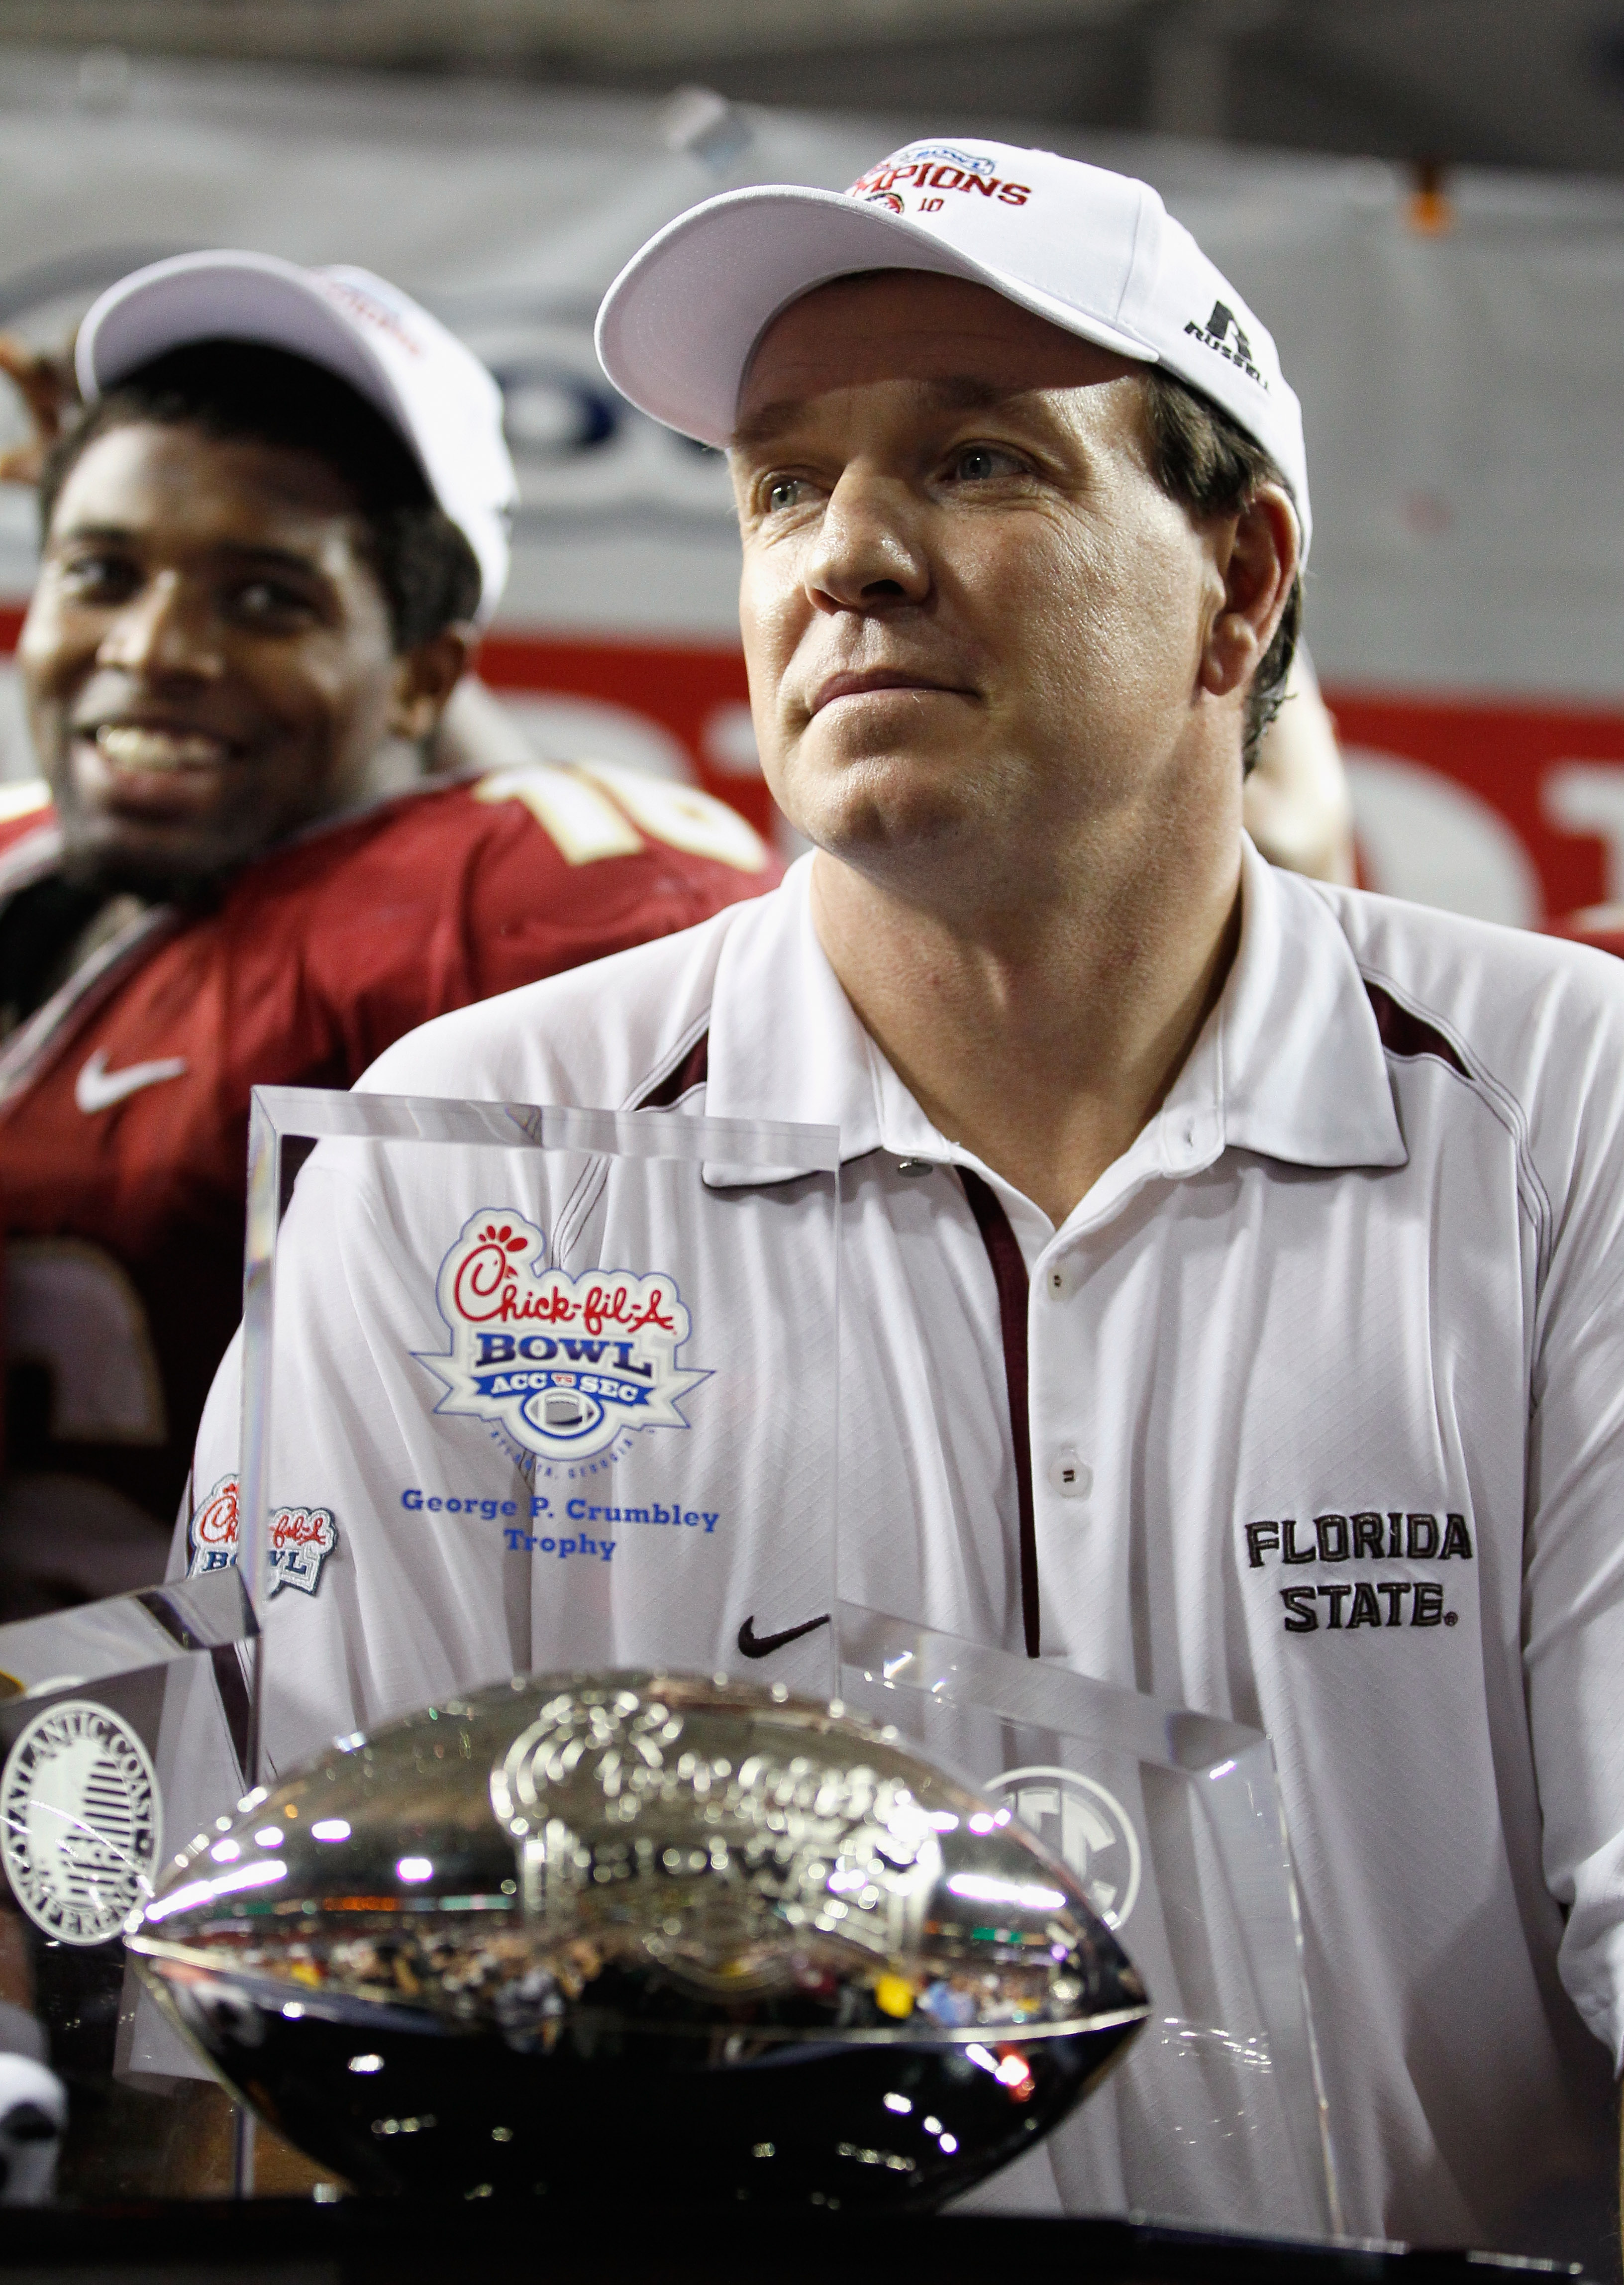 ATLANTA, GA - DECEMBER 31:  Head coach Jimbo Fisher of the Florida State Seminoles reacts after their 26-17 win over the South Carolina Gamecocks during the 2010 Chick-fil-A Bowl at Georgia Dome on December 31, 2010 in Atlanta, Georgia.  (Photo by Kevin C